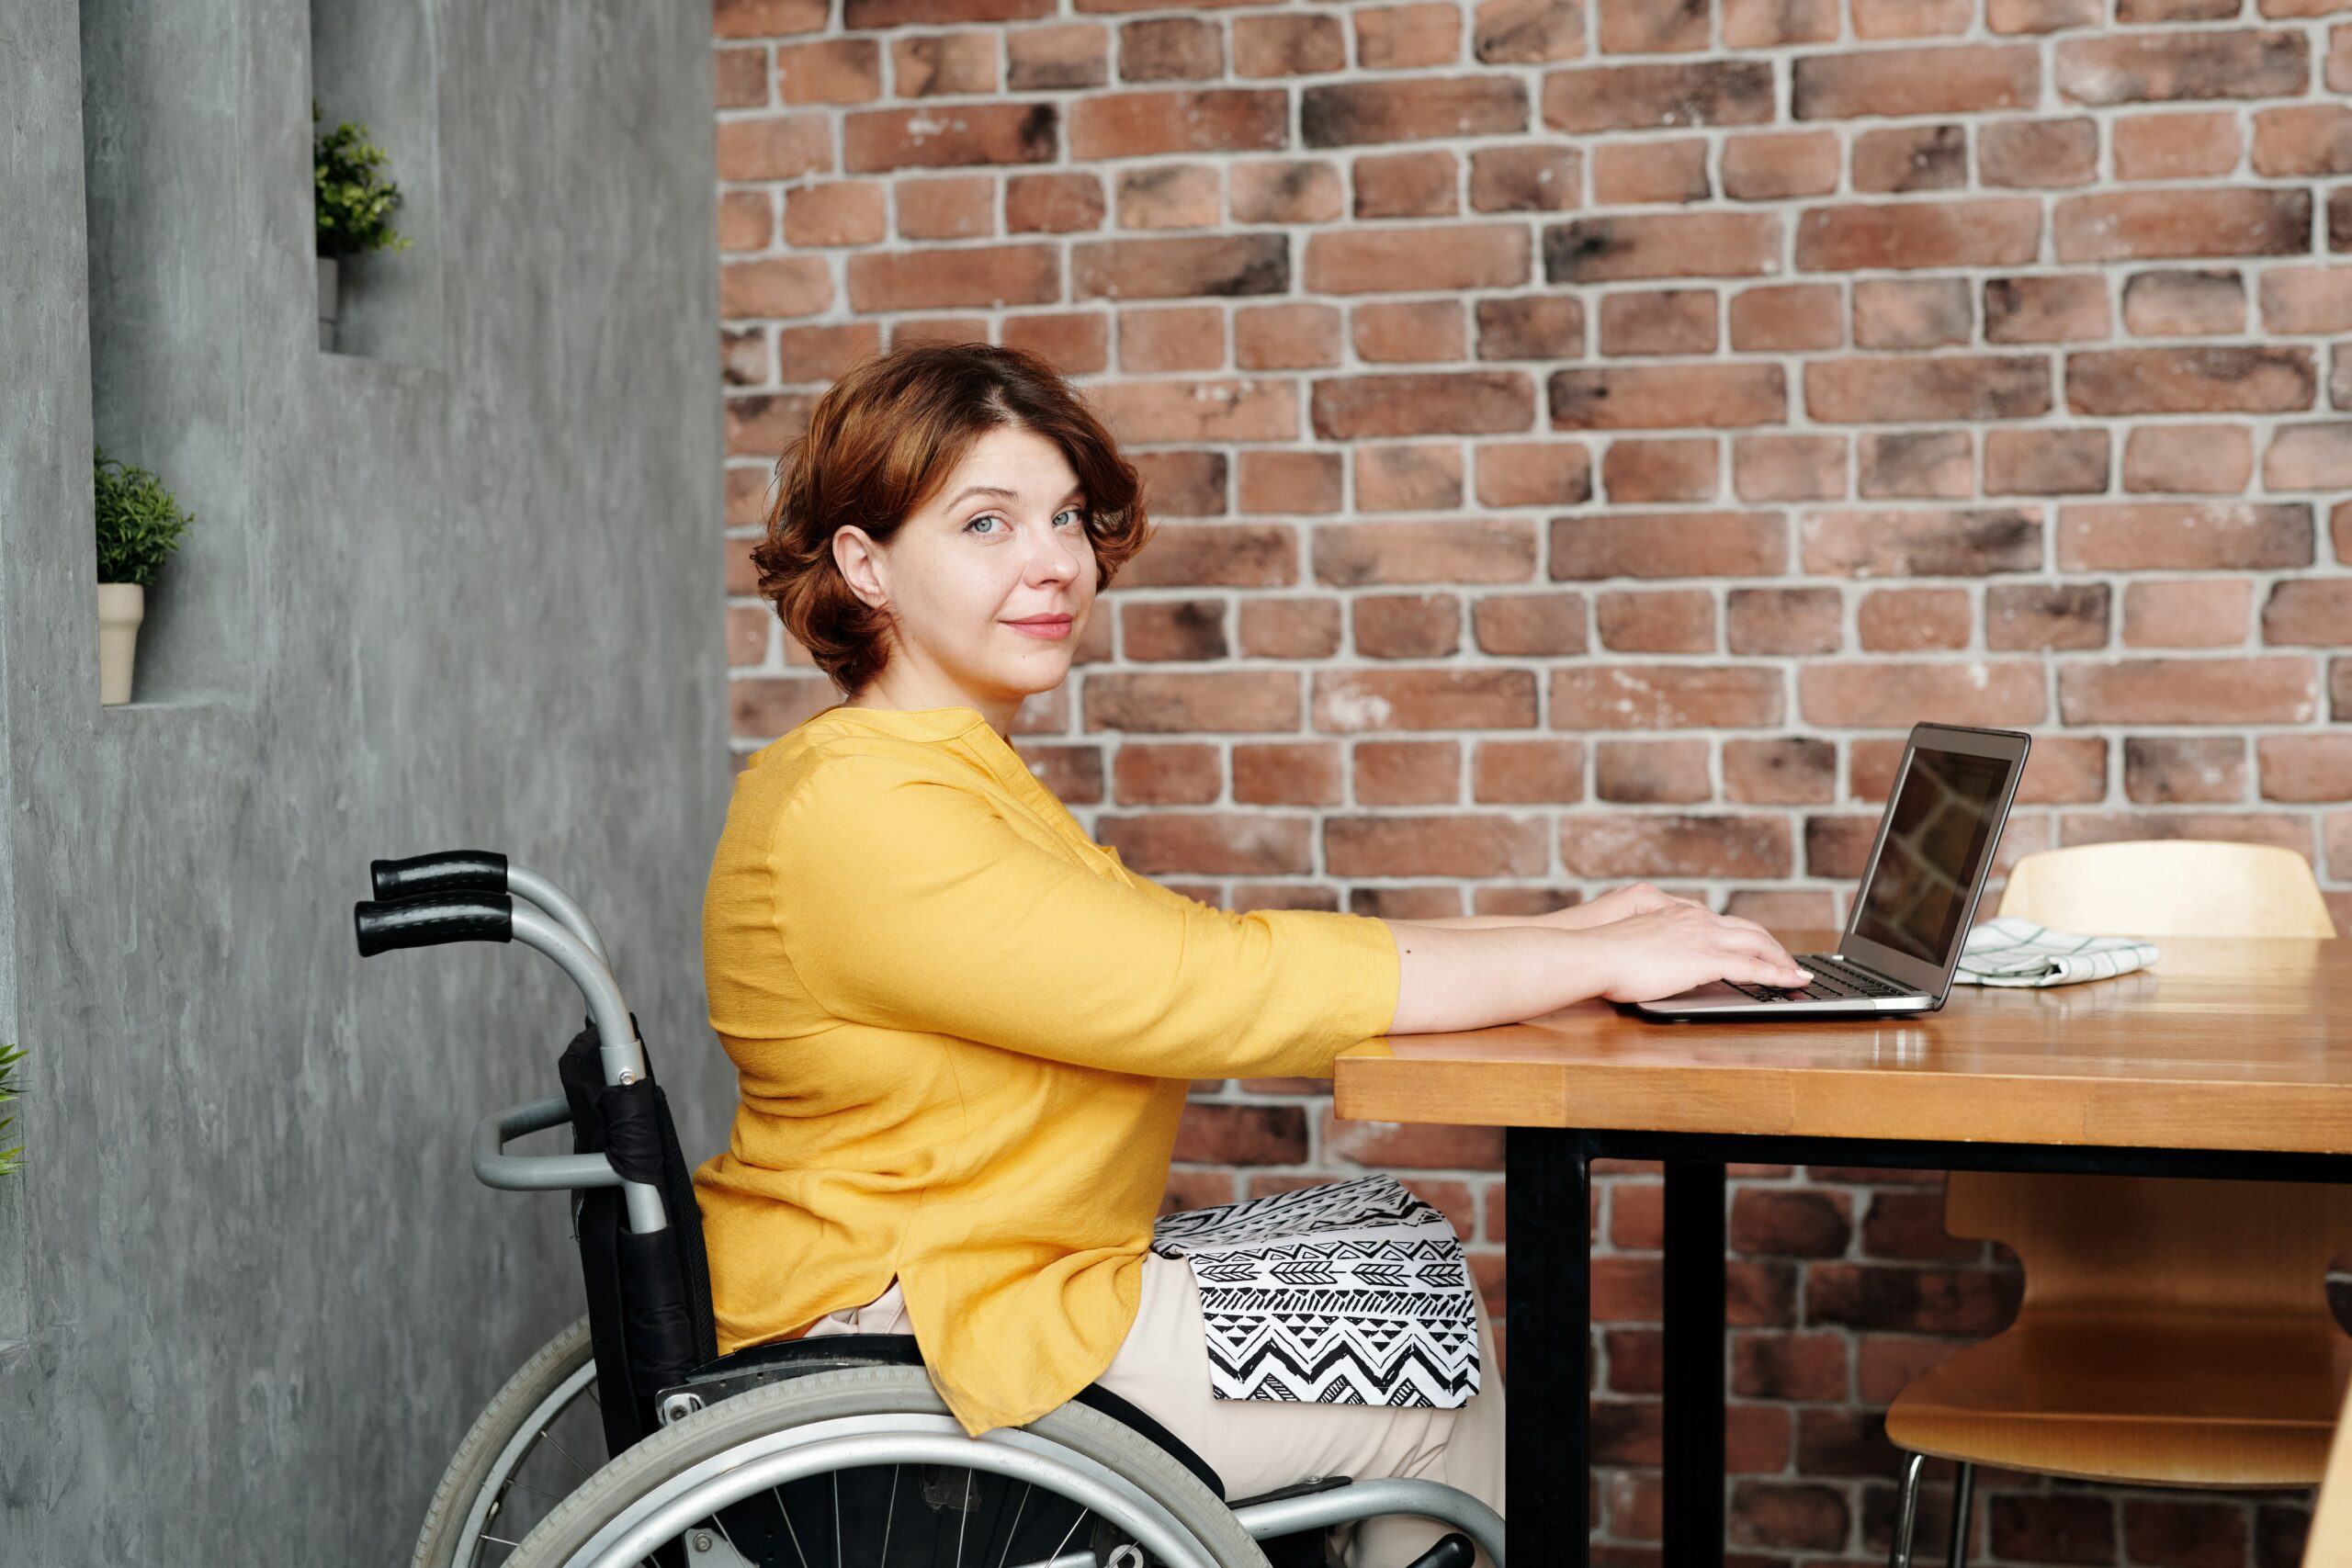 A person sitting in a wheelchair works on their laptop while looking at the camera.